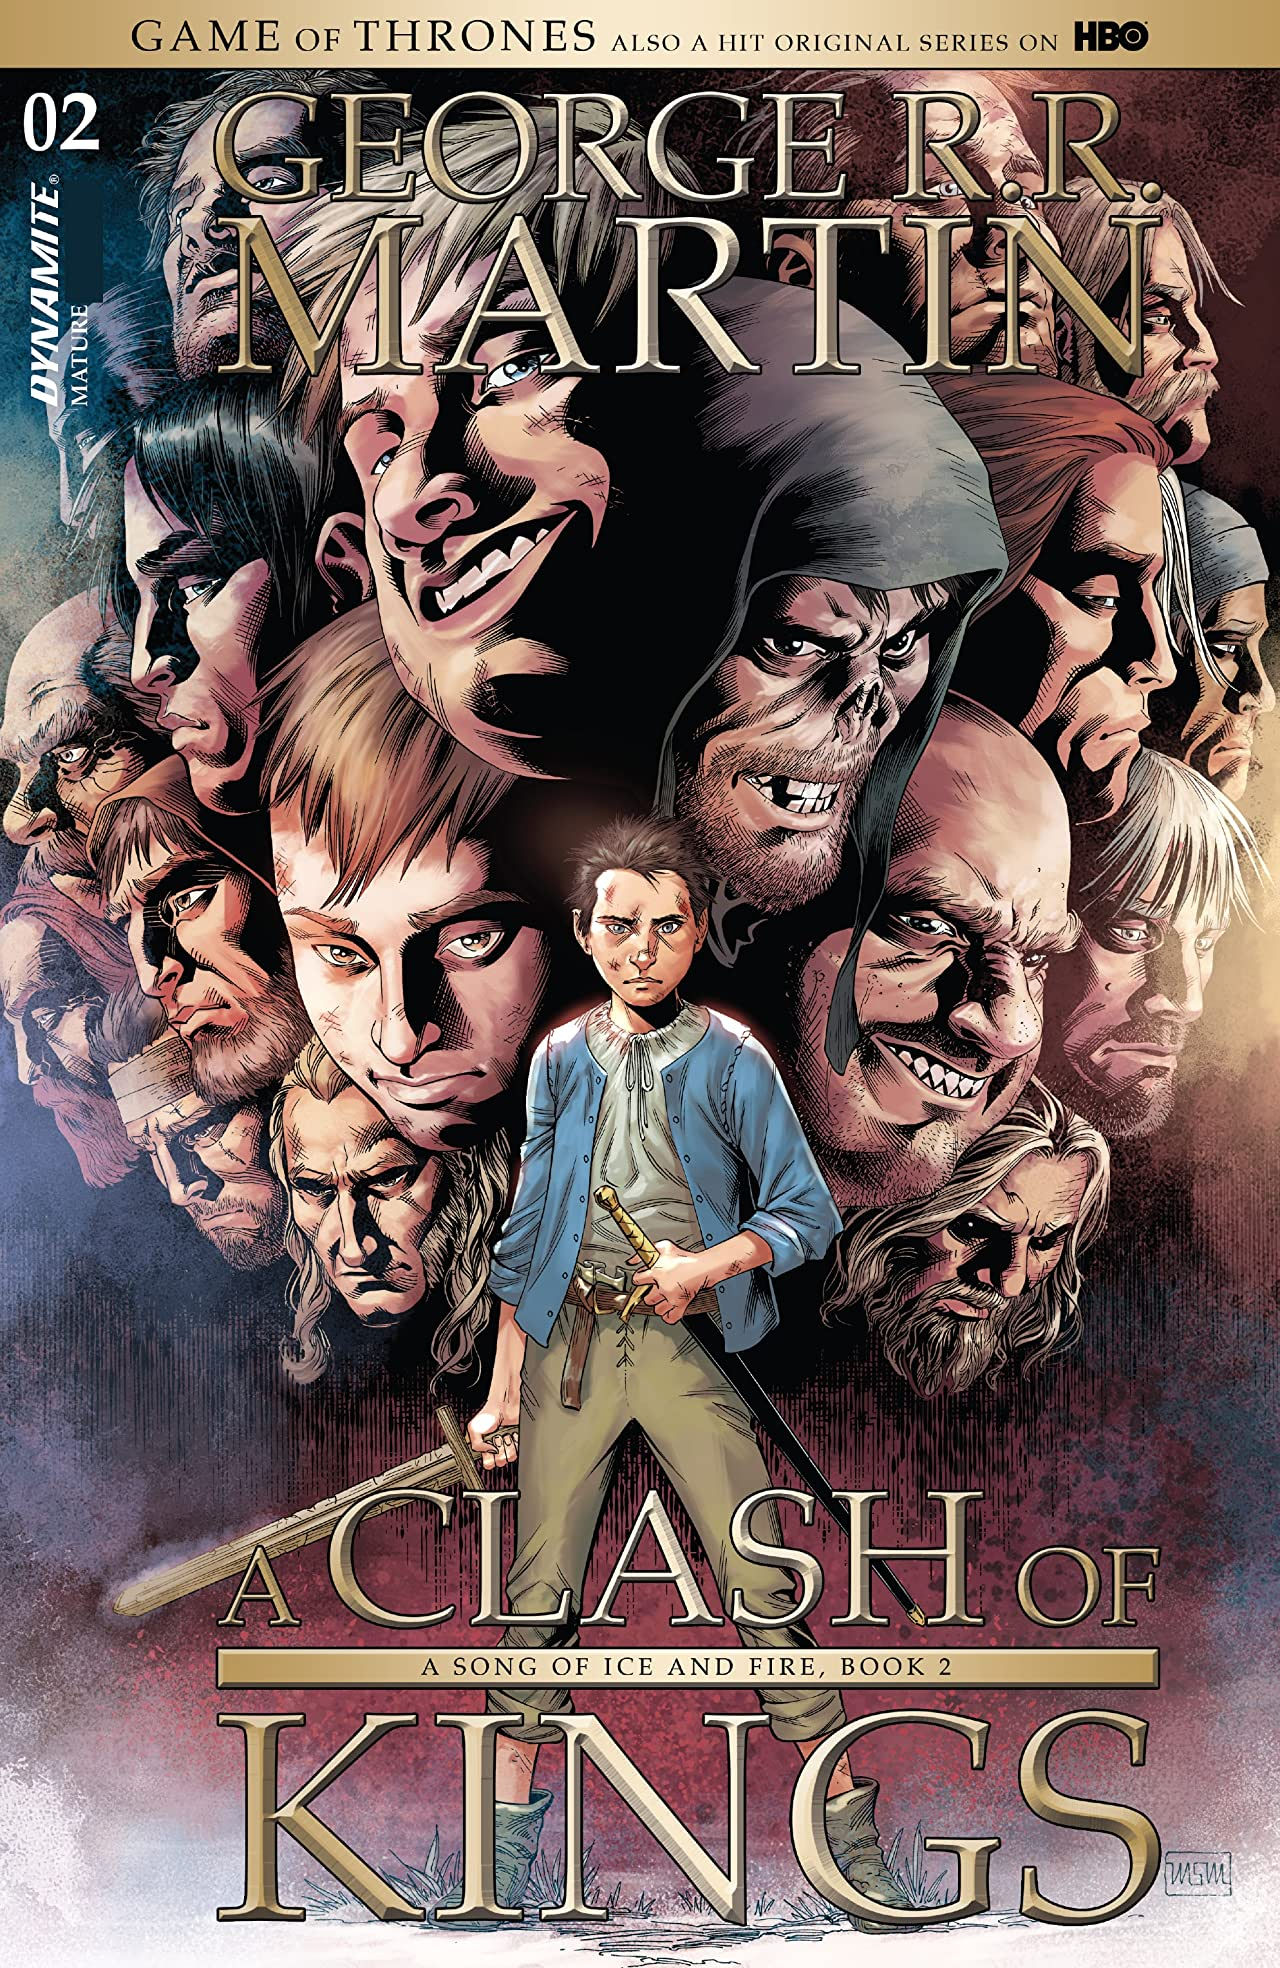 George R.R. Martin's A Clash Of Kings: The Comic Book #2